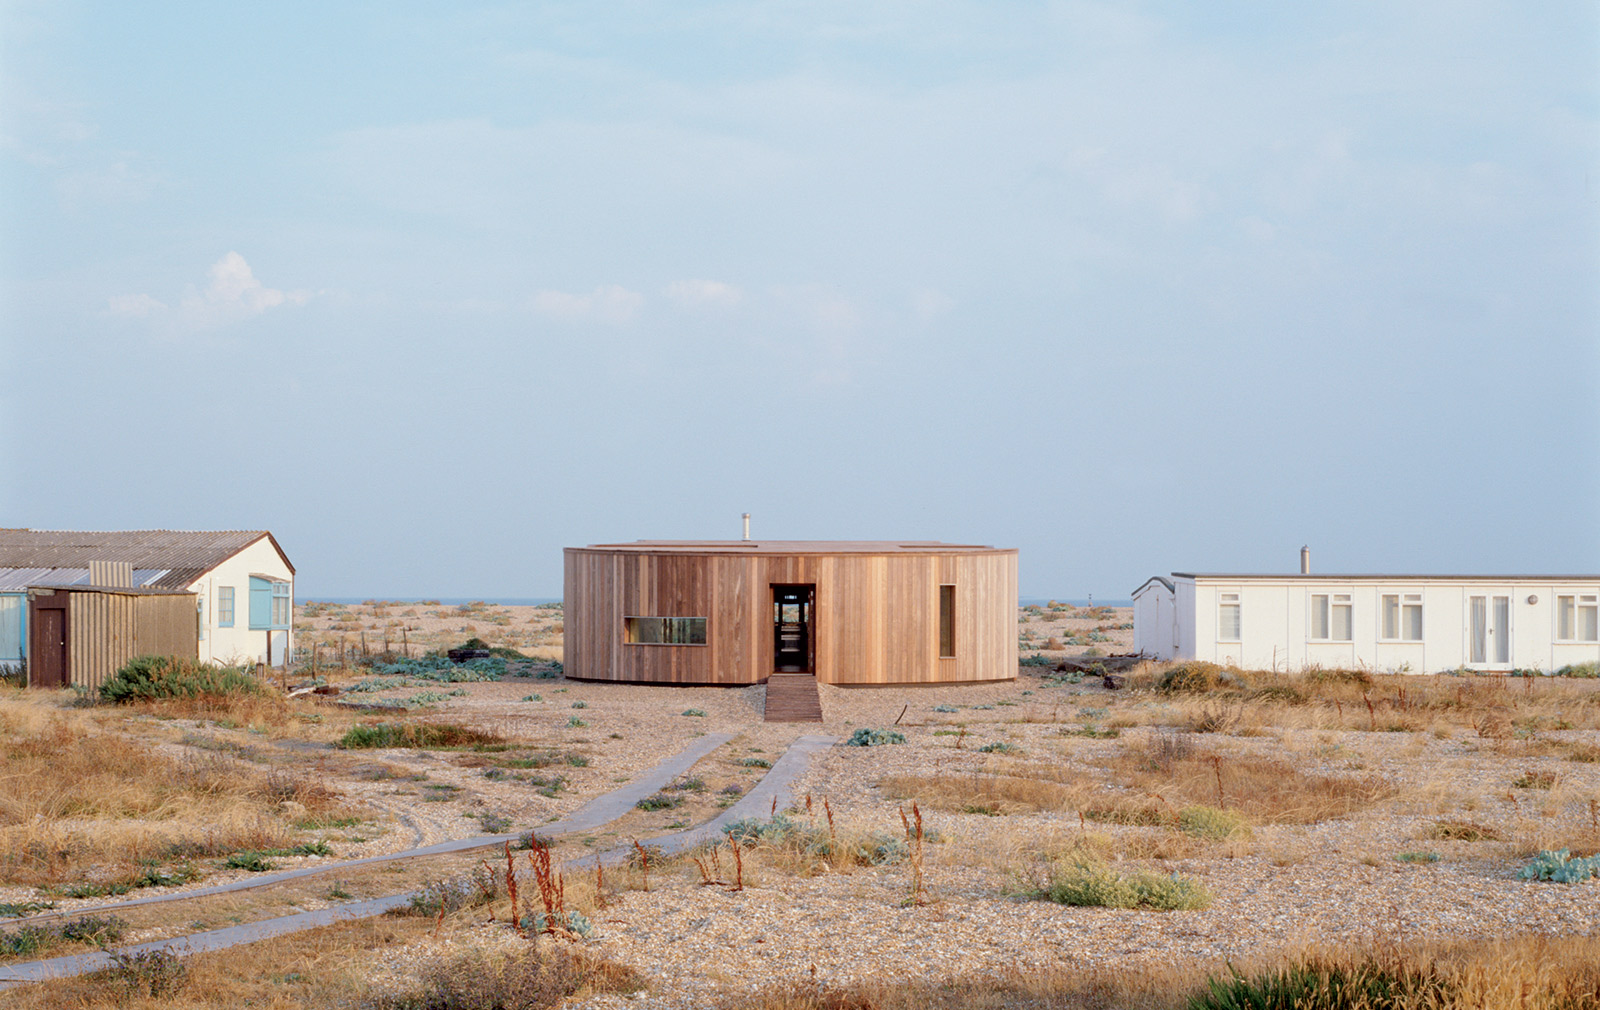 El Ray by Simon Conder in Dungeness